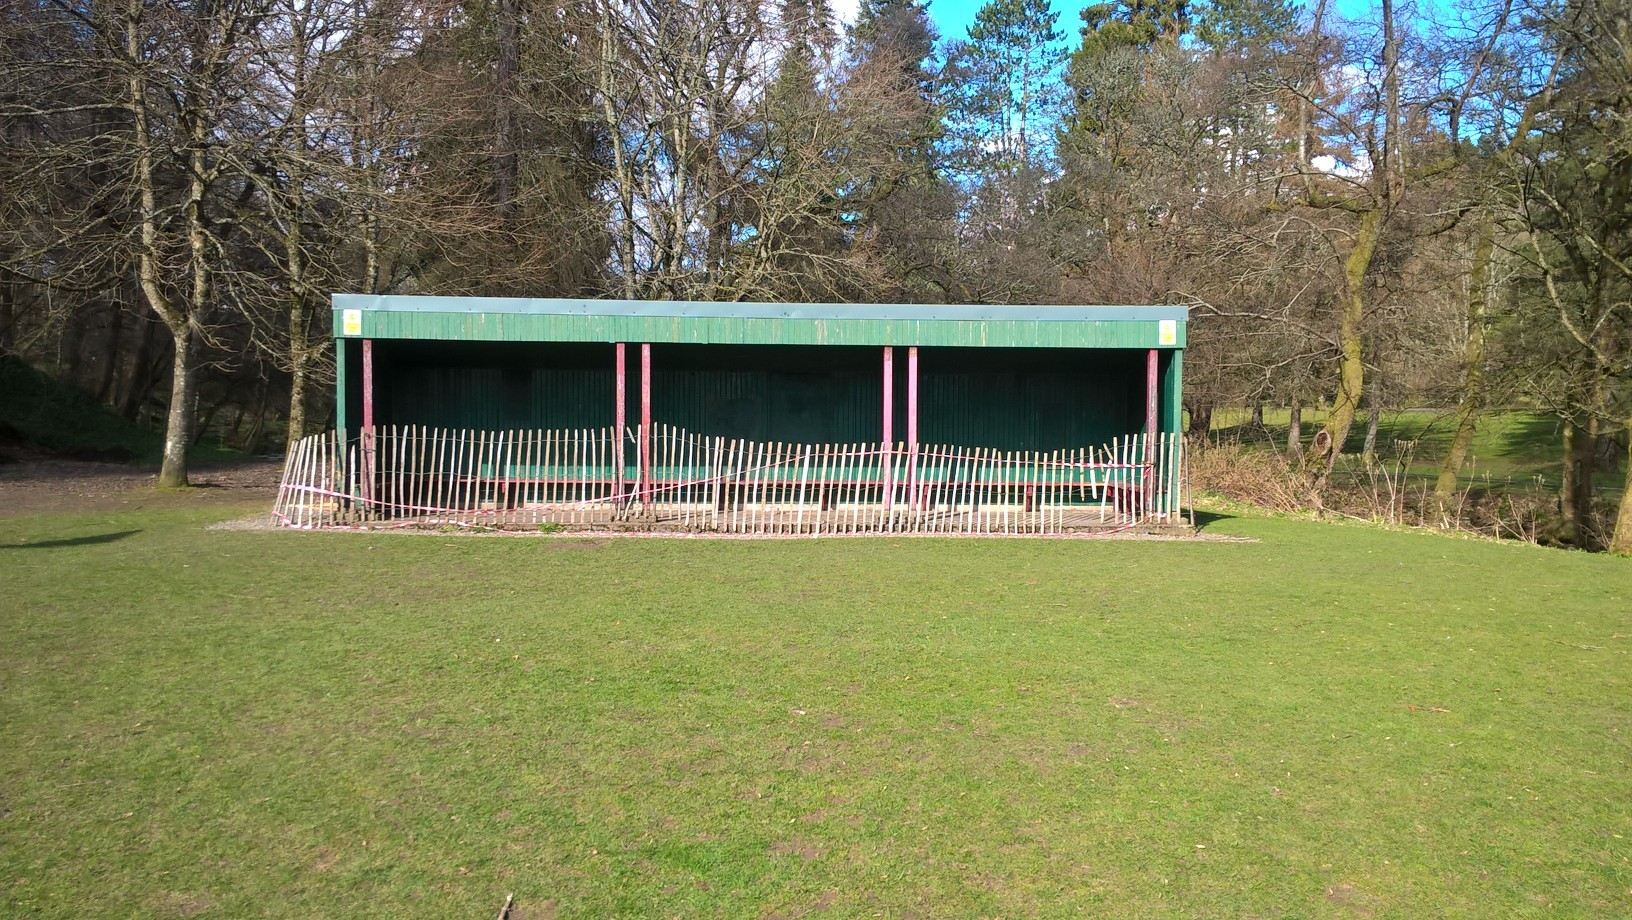 The Mungall Park shelter has been hugely popular with locals, offering both respite from the rain and a base for community and family events, such as barbeques.